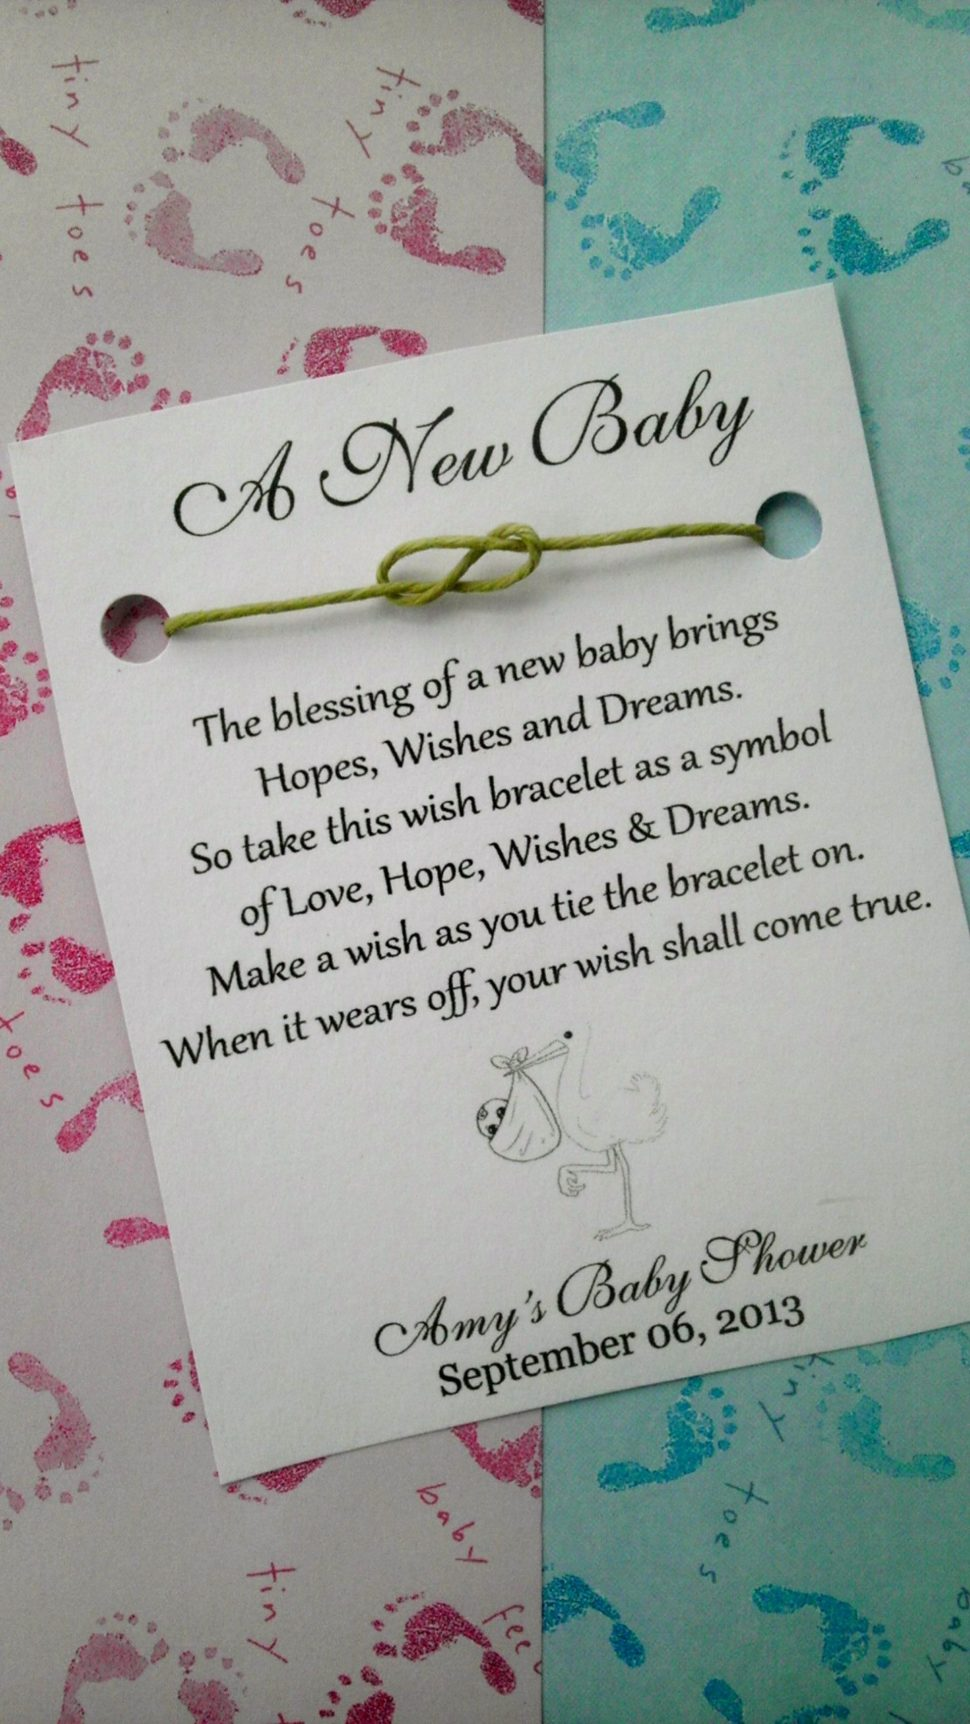 Medium Size of Baby Shower:stylish Baby Shower Wishes Picture Inspirations Baby Shower Wishes Baby Shower Poems Ideas Para Baby Shower Baby Shower Gift Ideas Princess Baby Shower Baby Shower Wish Bracelet Shower Favor Favors Personalized Middot That Wedding Boutique Middot Online Store Storenvy